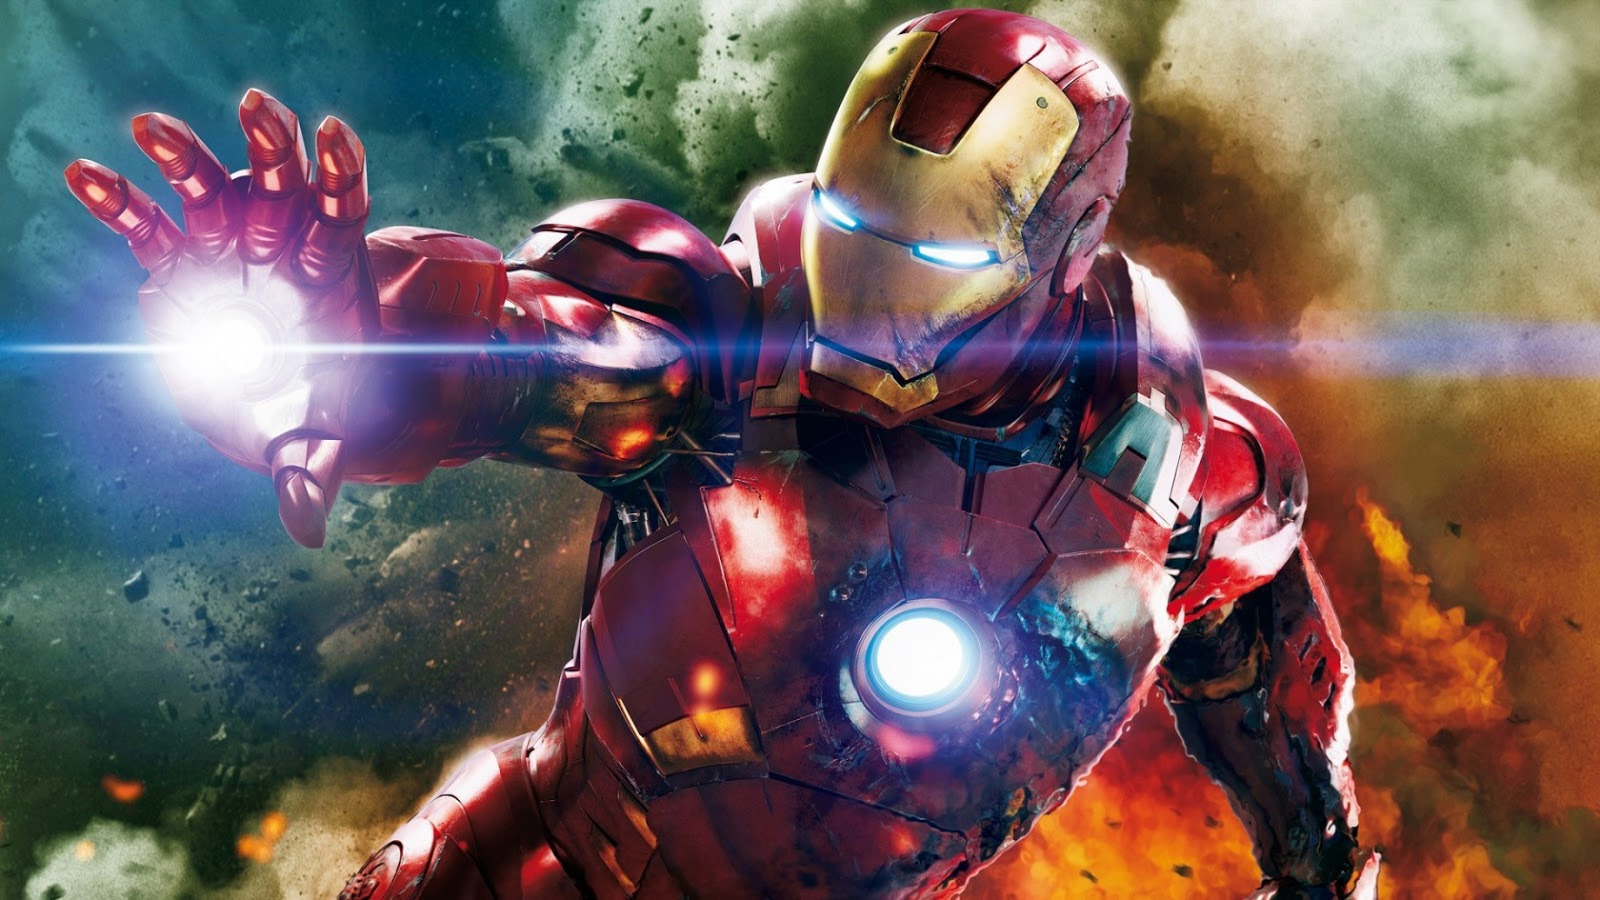 Download Wallpapers Of Iron Man